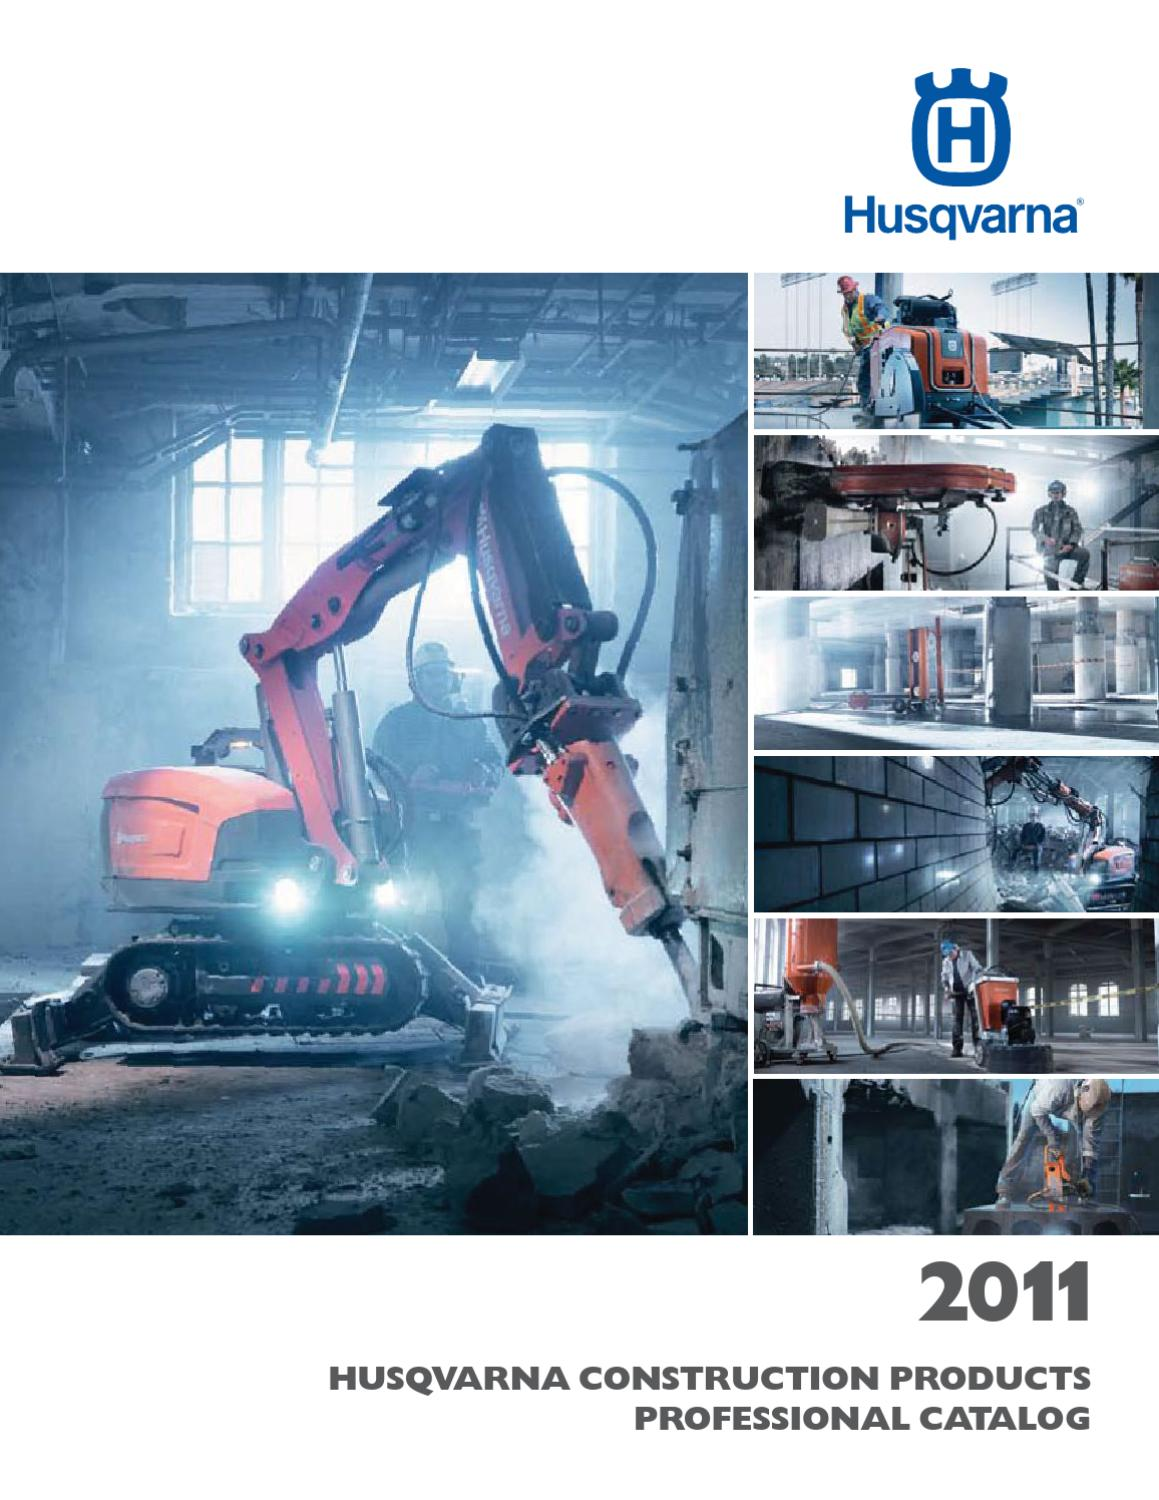 Husqvarna Construction Products 2011 Product Catalog (US) by